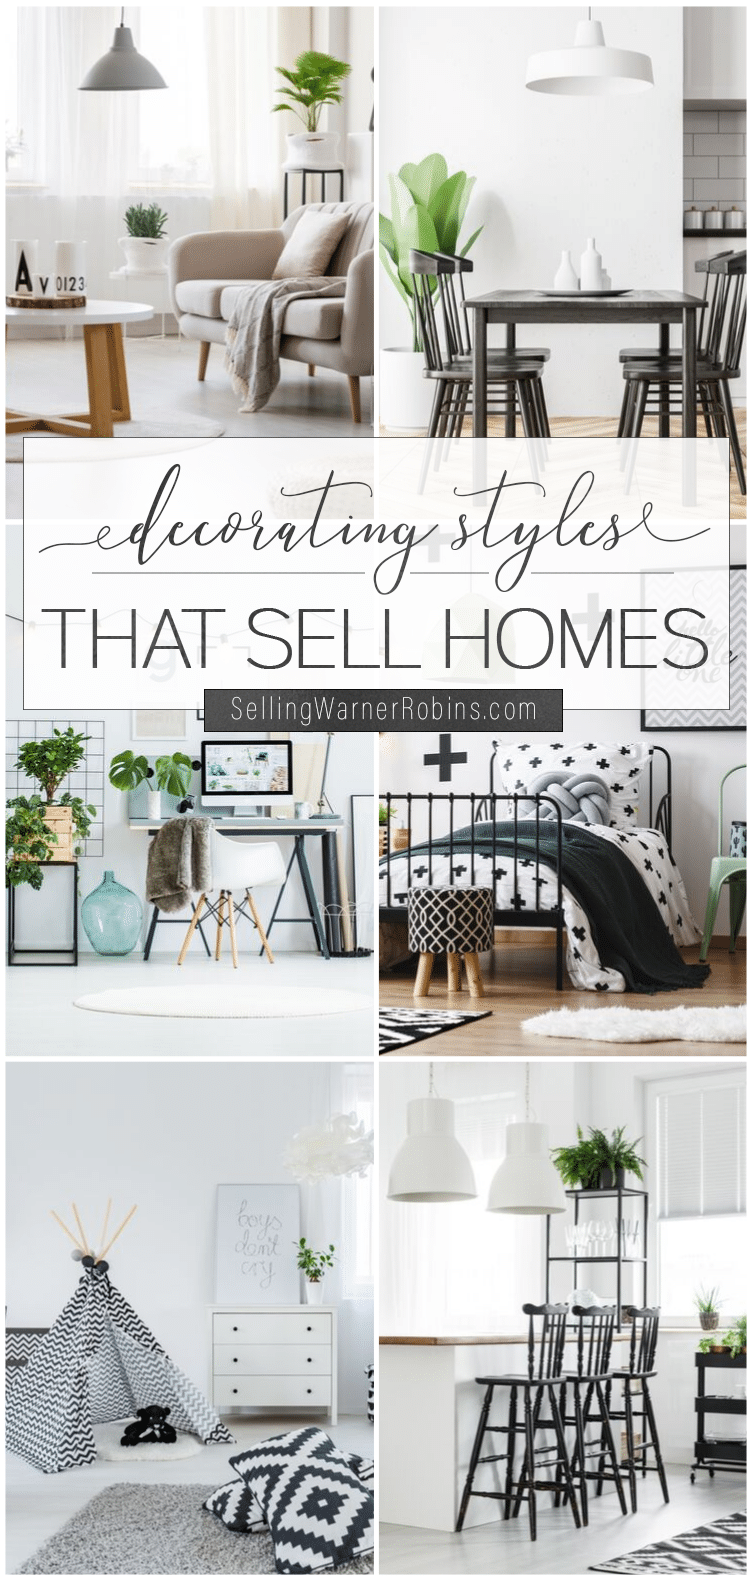 Decorating Styles that Sell Homes